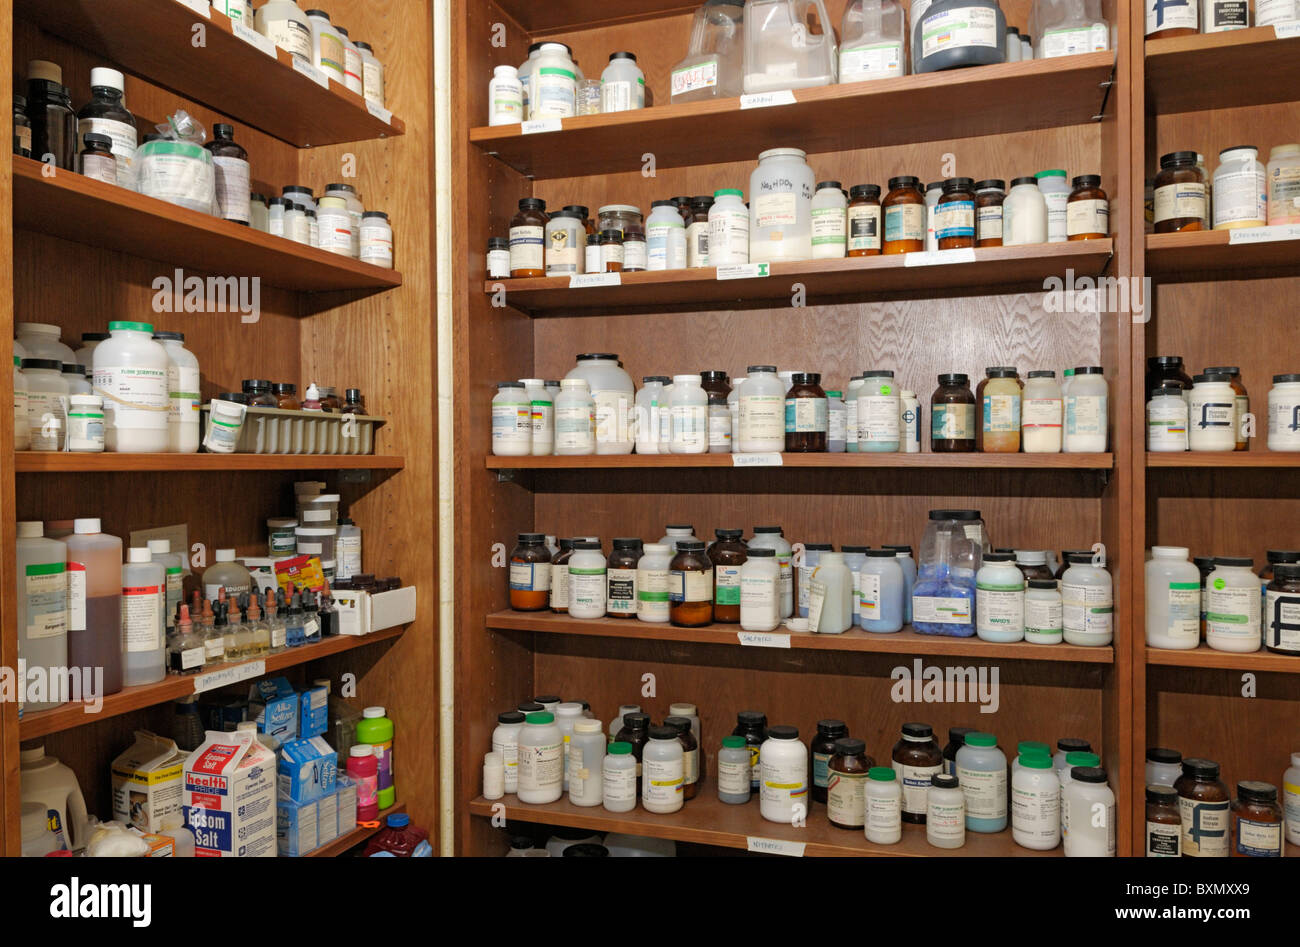 Chemical storage for a high school chemistry laboratory - Stock Image